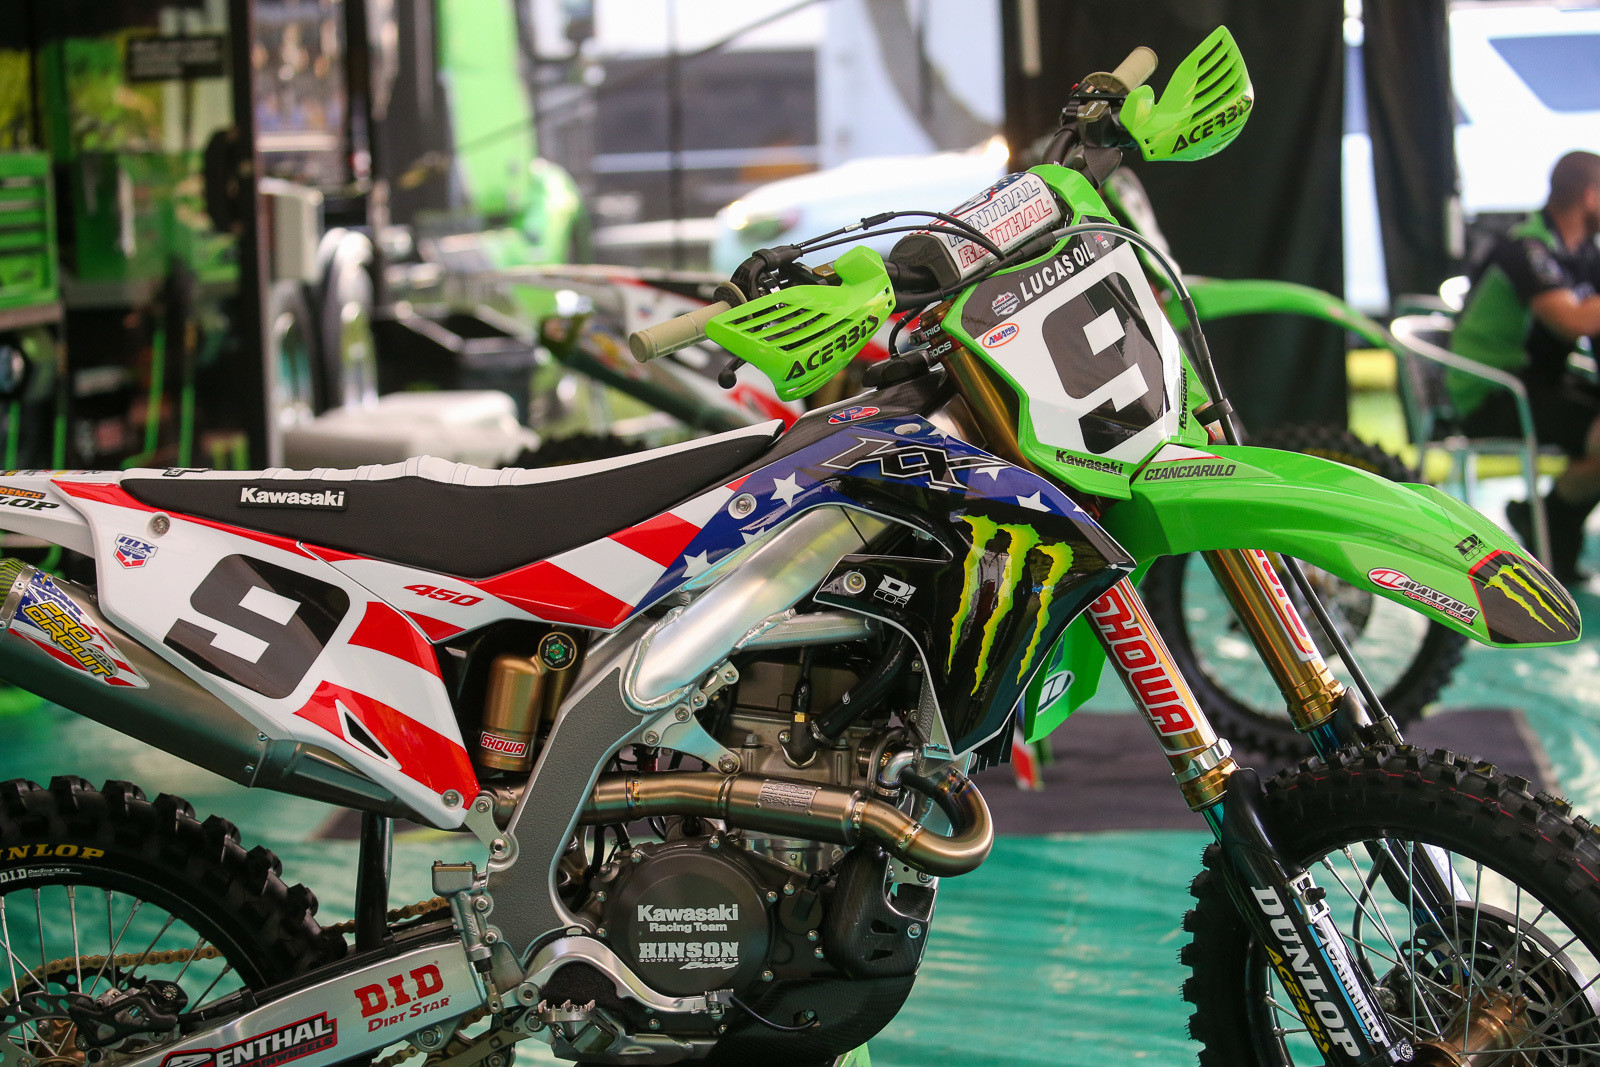 D'cor's take on a Monster Energy Kawasaki fourth of July.